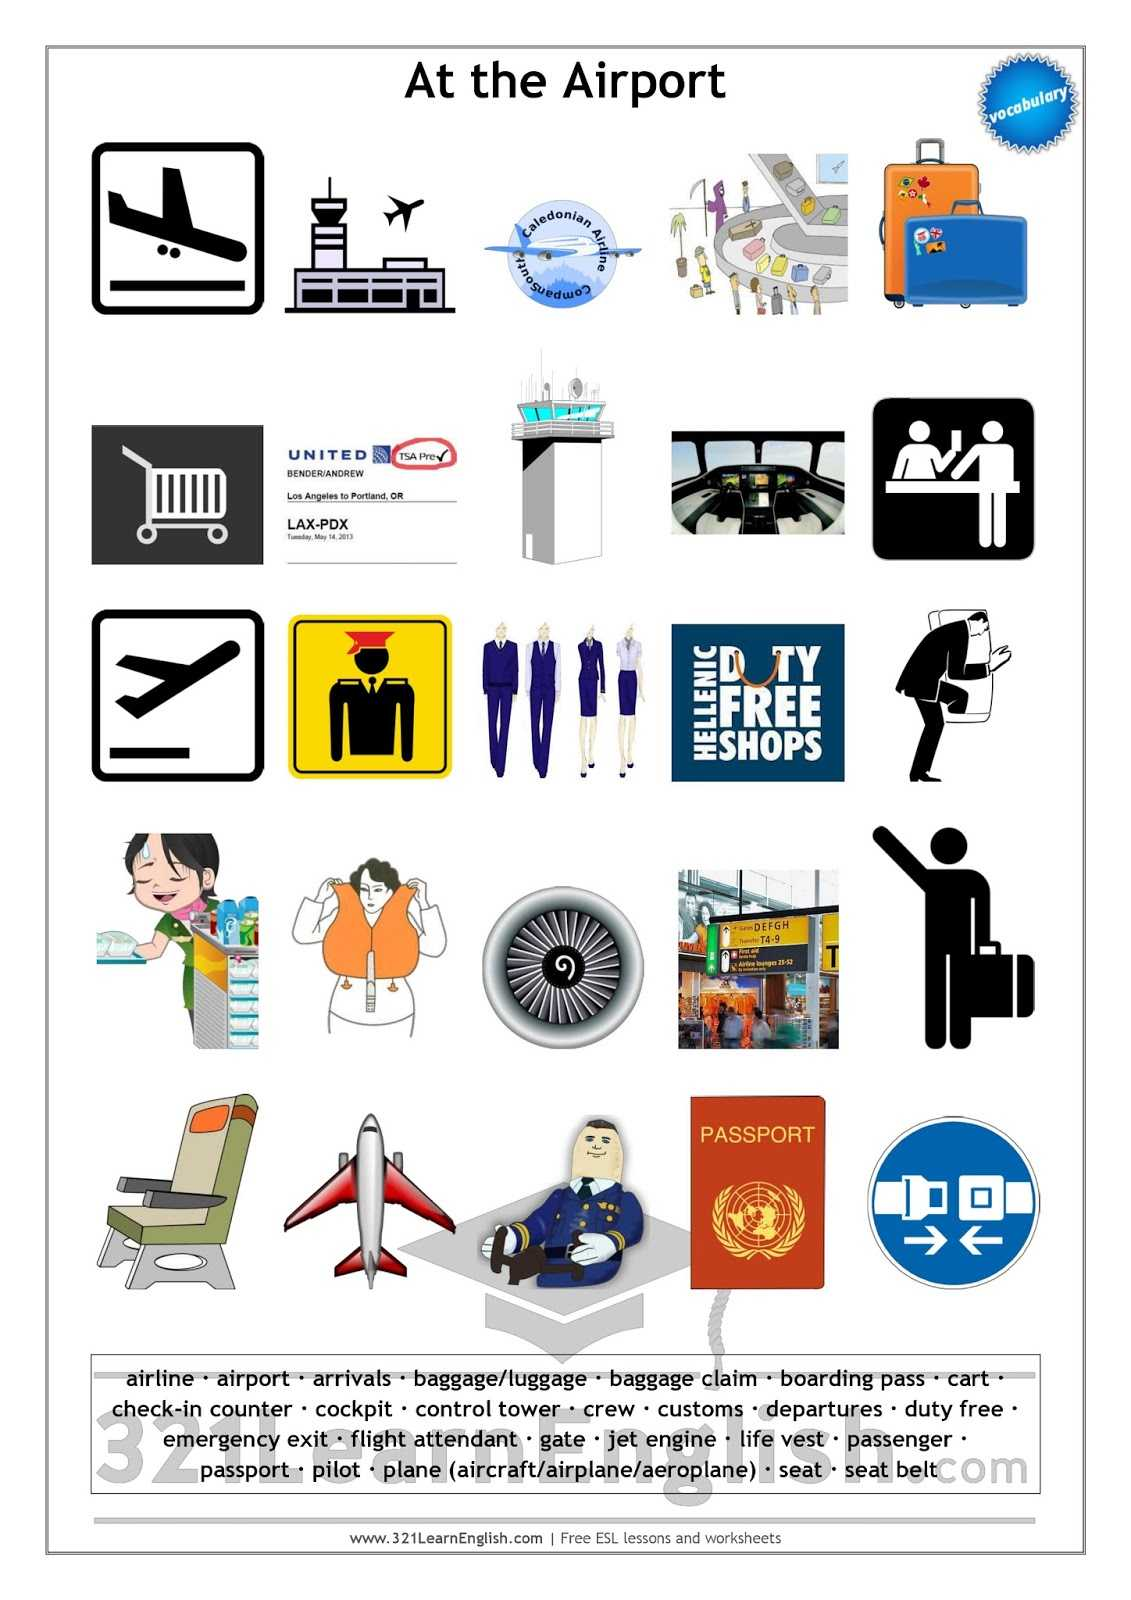 Free English Worksheets together with 321 Learn English Vocabulary at the Airport Level B1